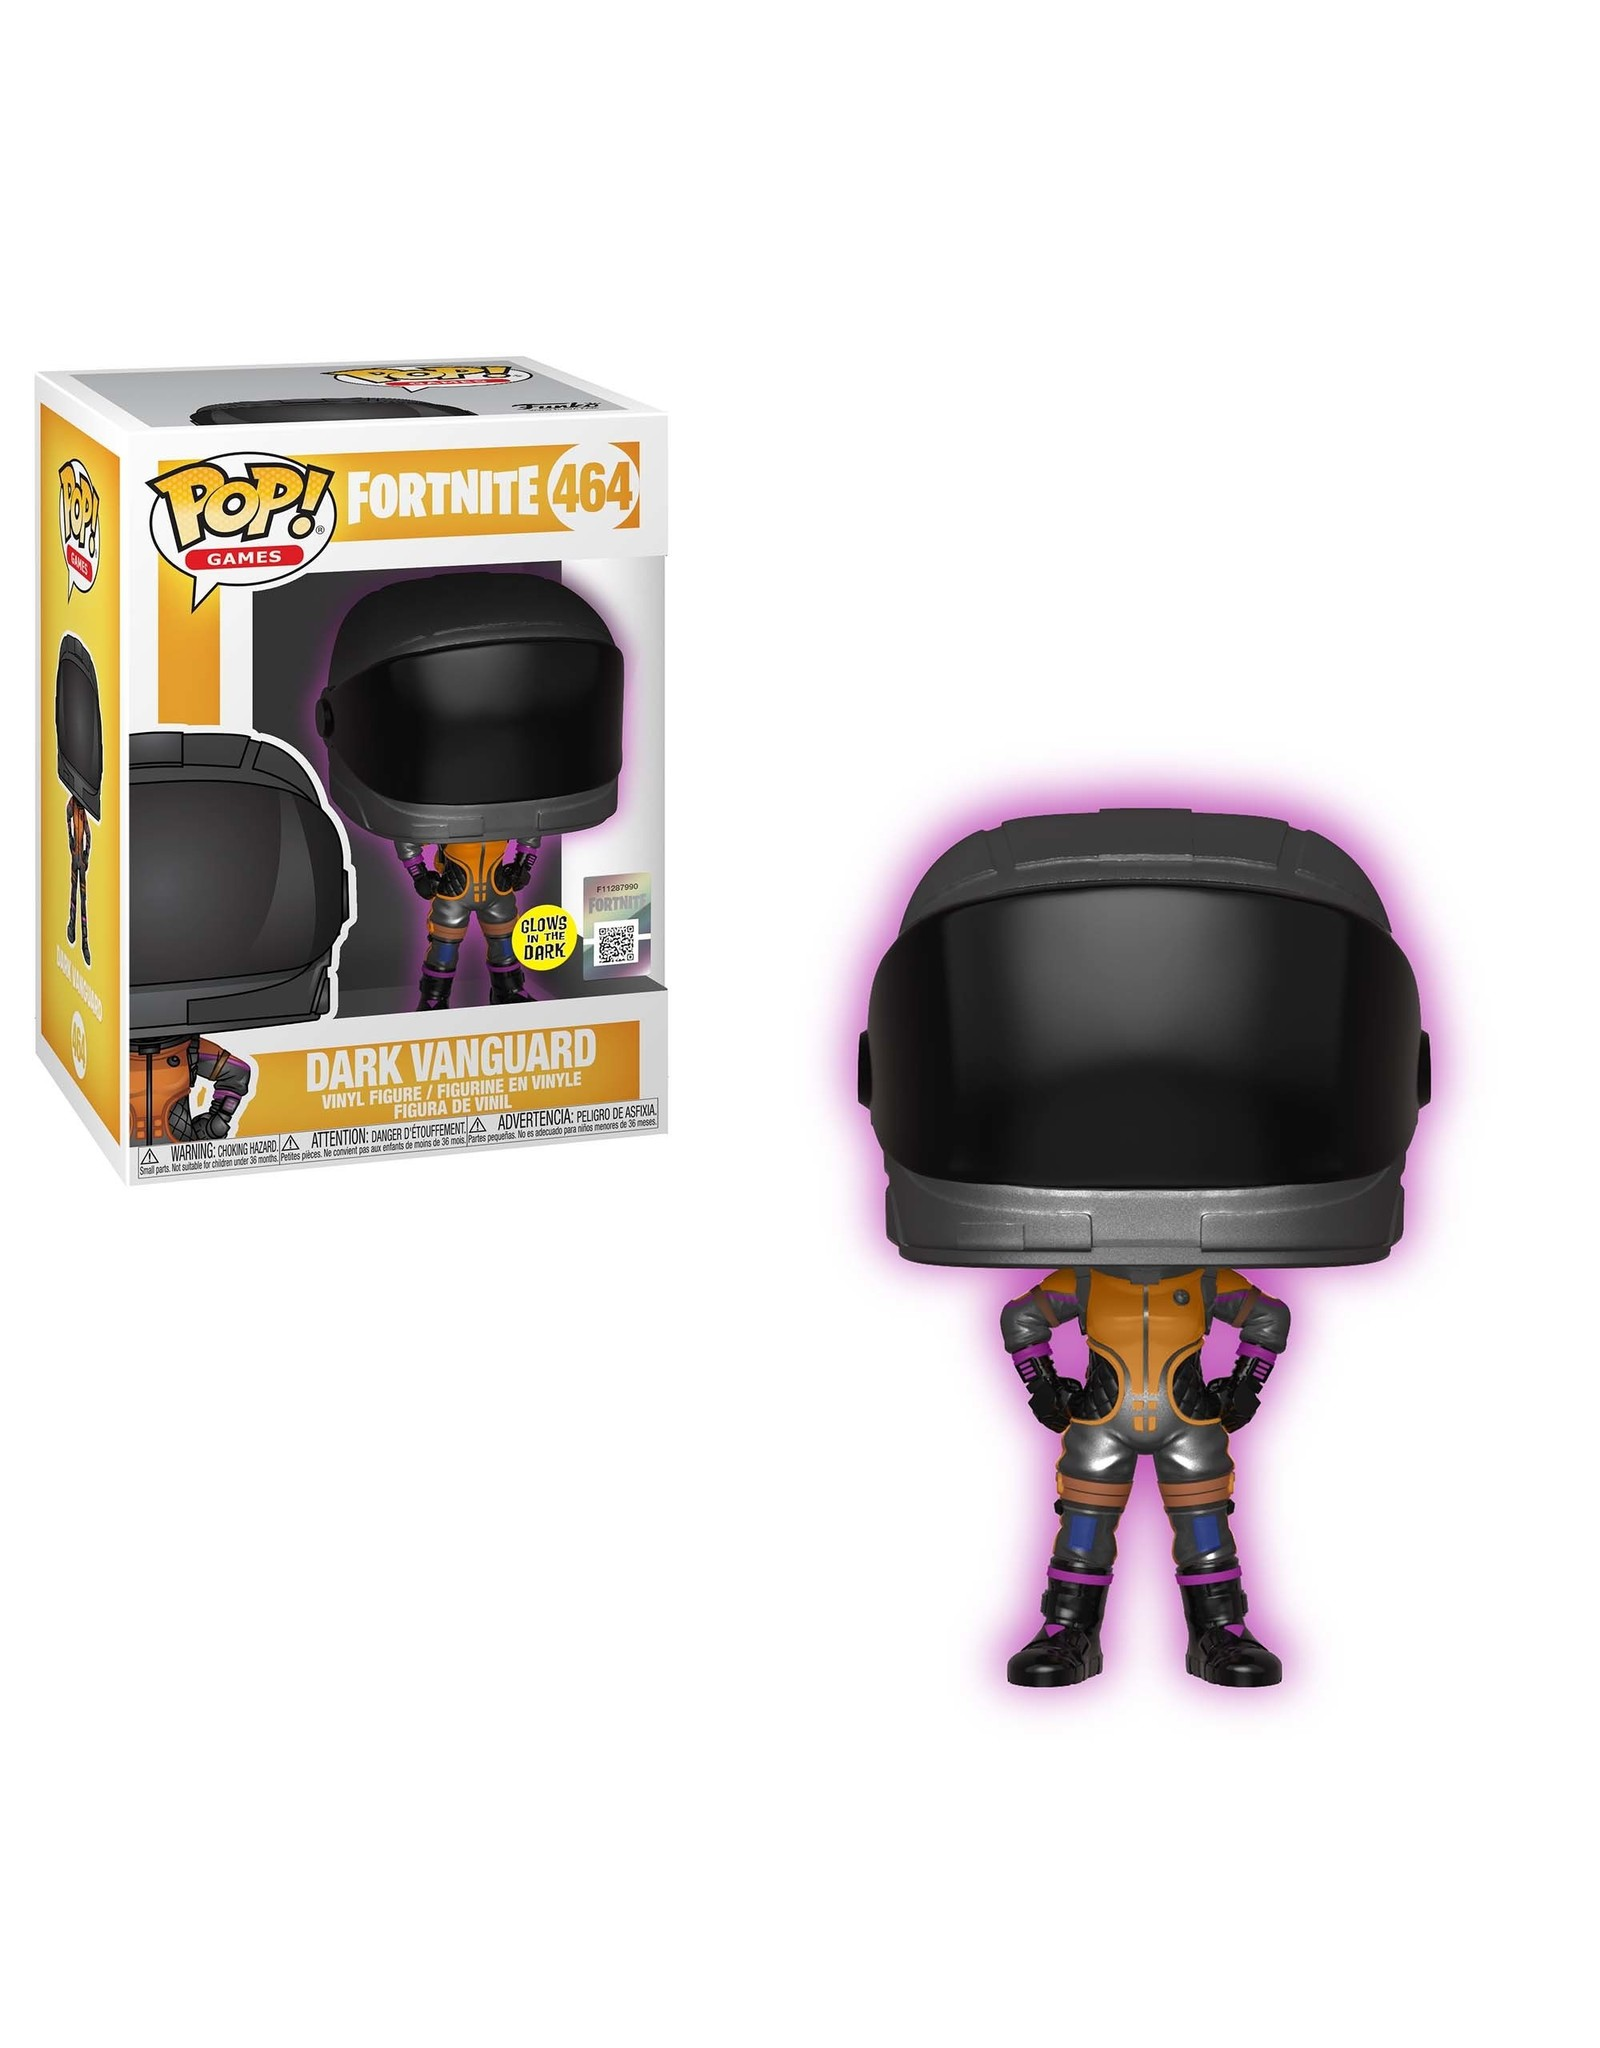 FUNKO POP FORTNITE DARK VANGUARD VINYL FIG